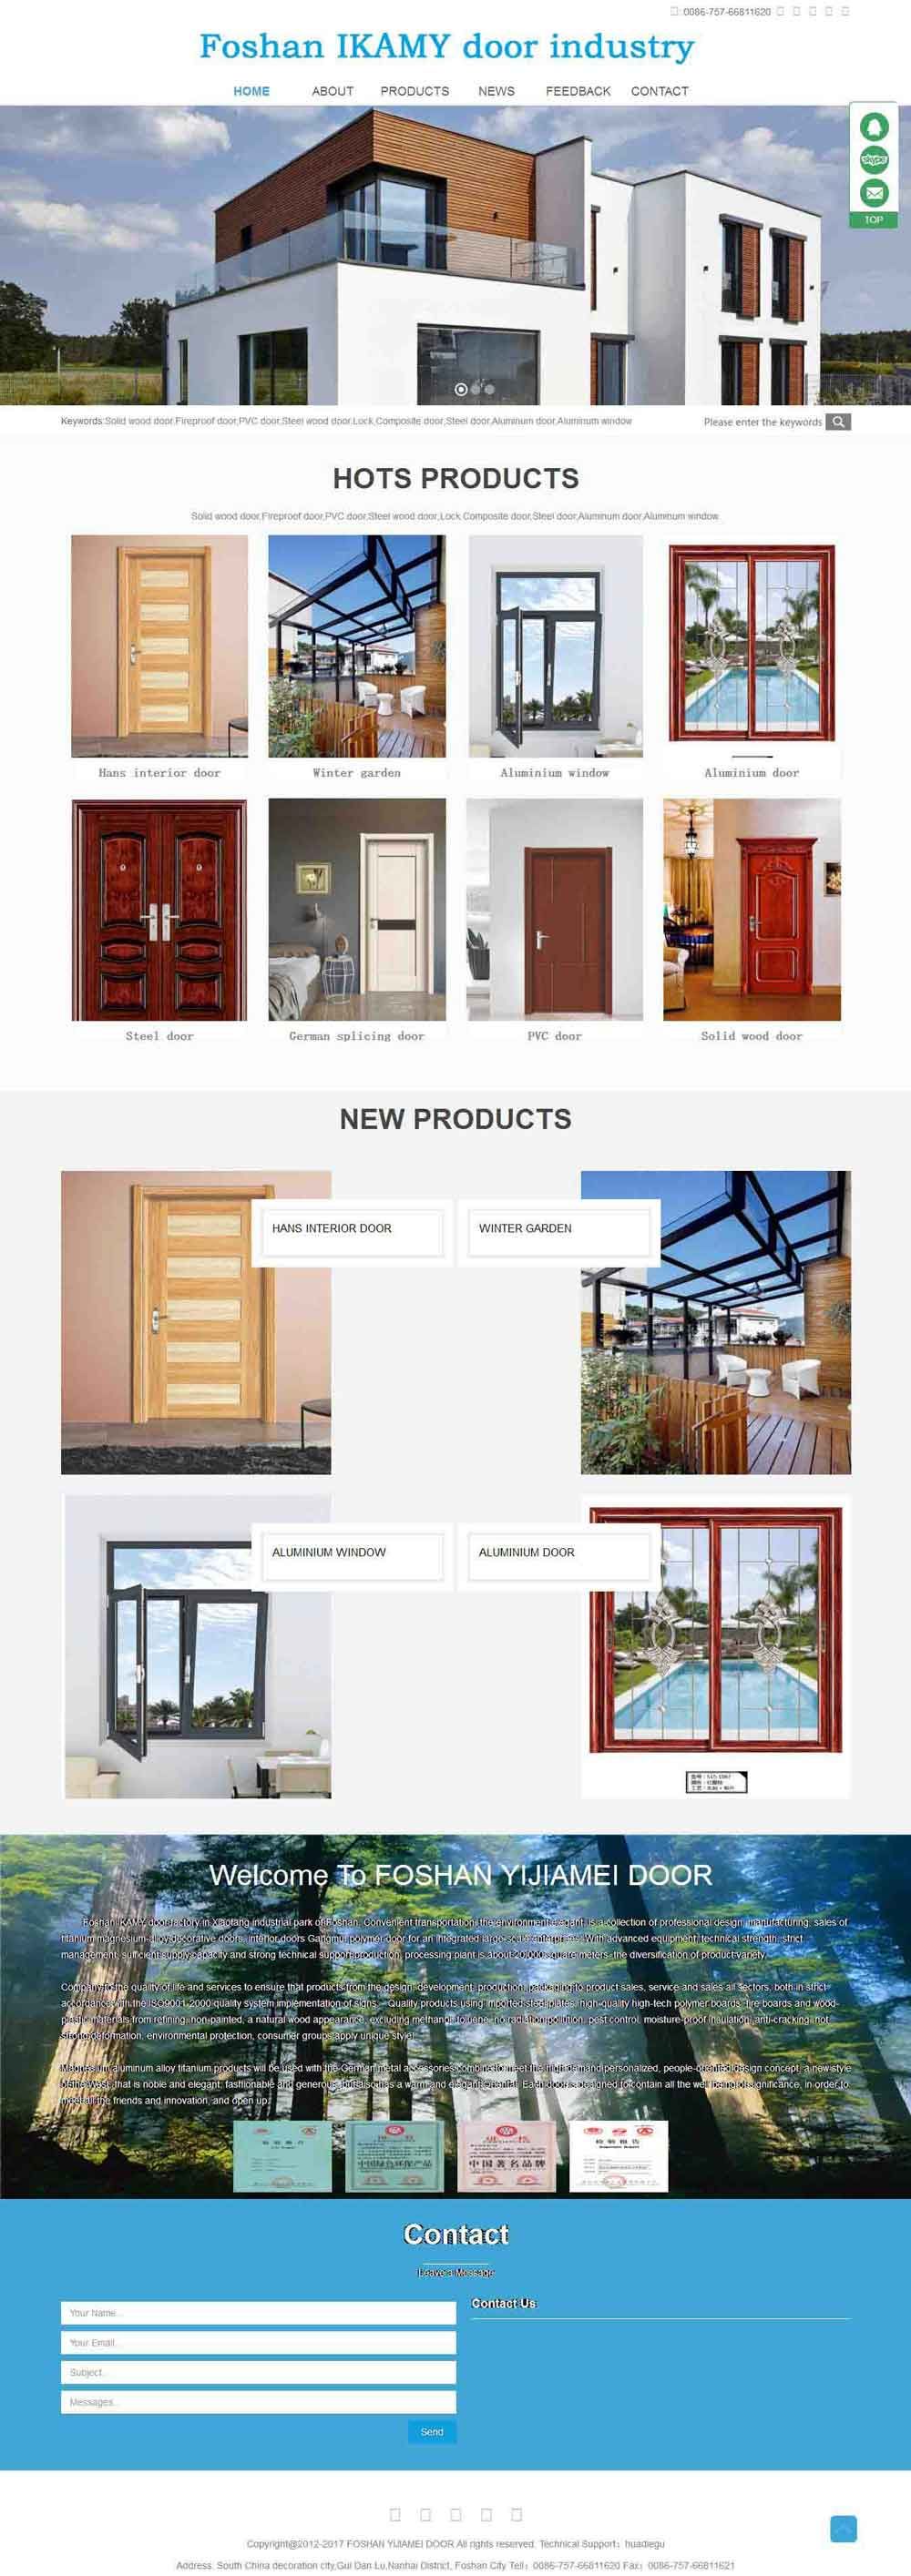 Foshan IKAMY door industry